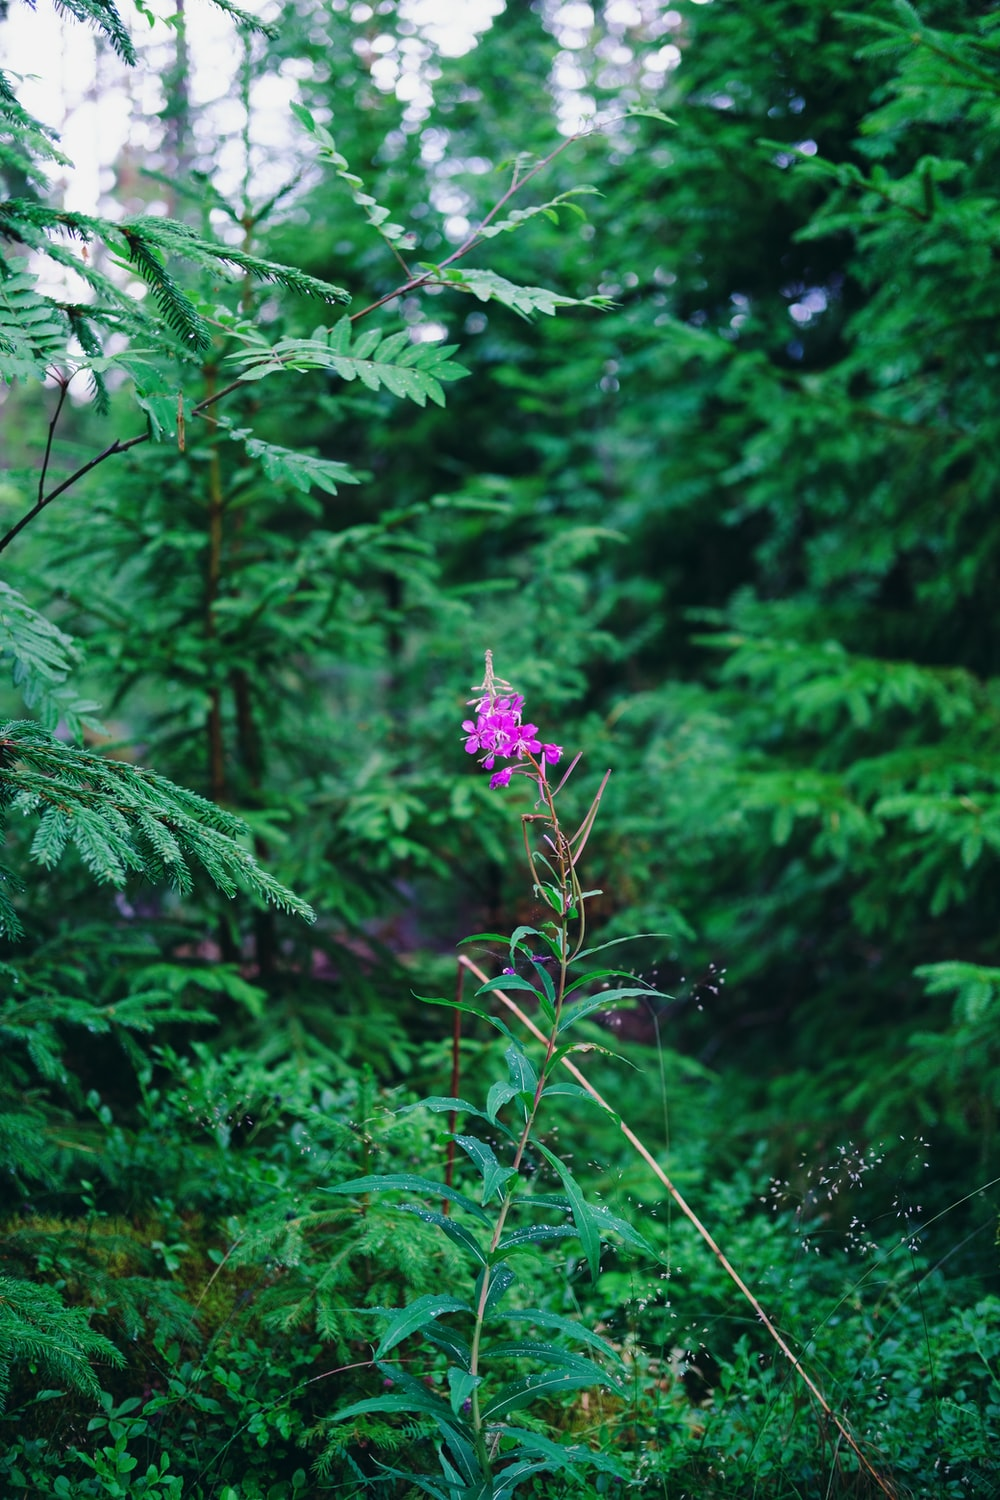 purple flower in the forest